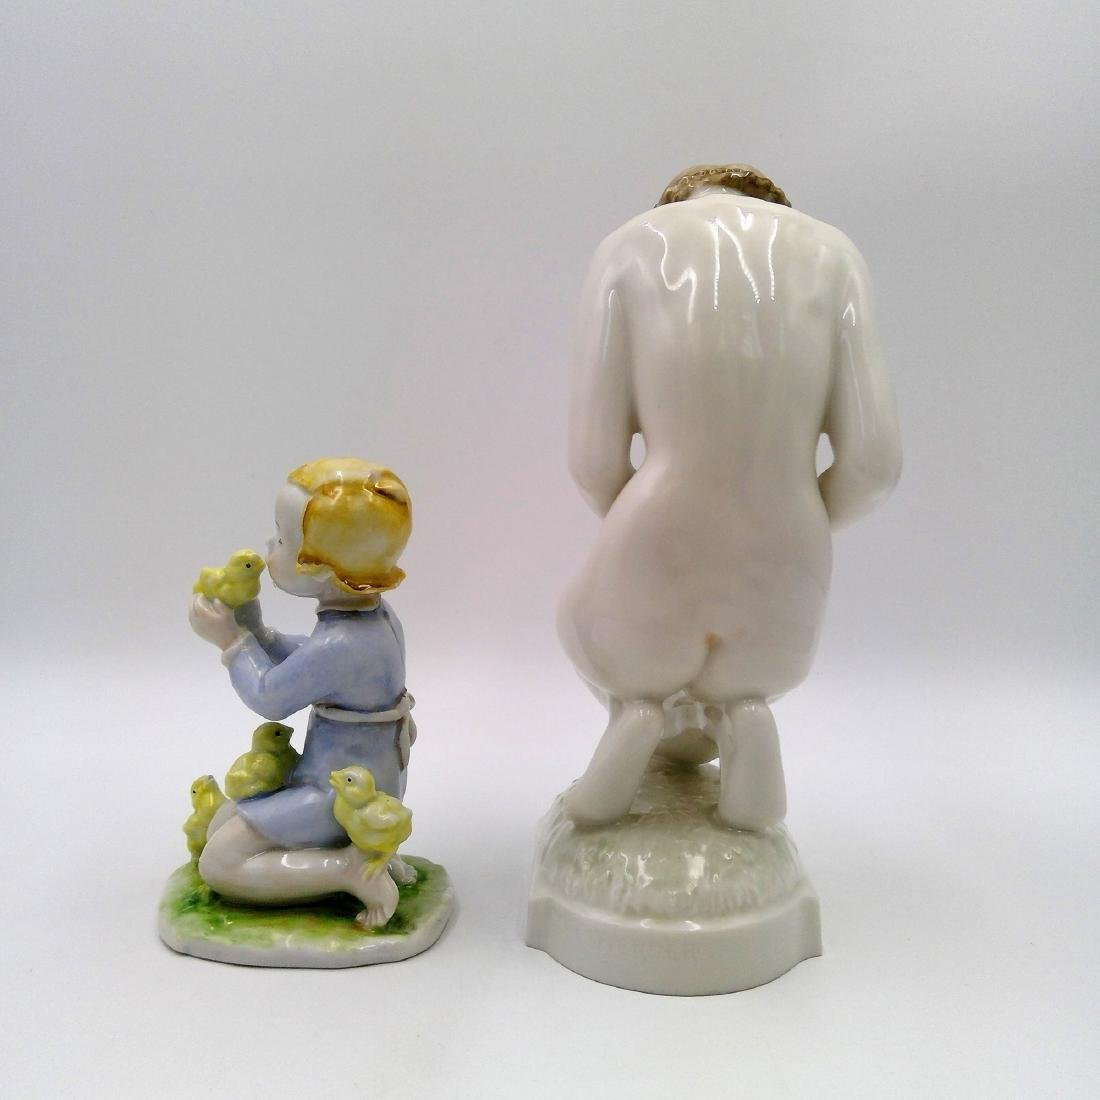 GROUP OF 2 ROSENTHAL & HUTSCHENREUTHER FIGURINES - 2